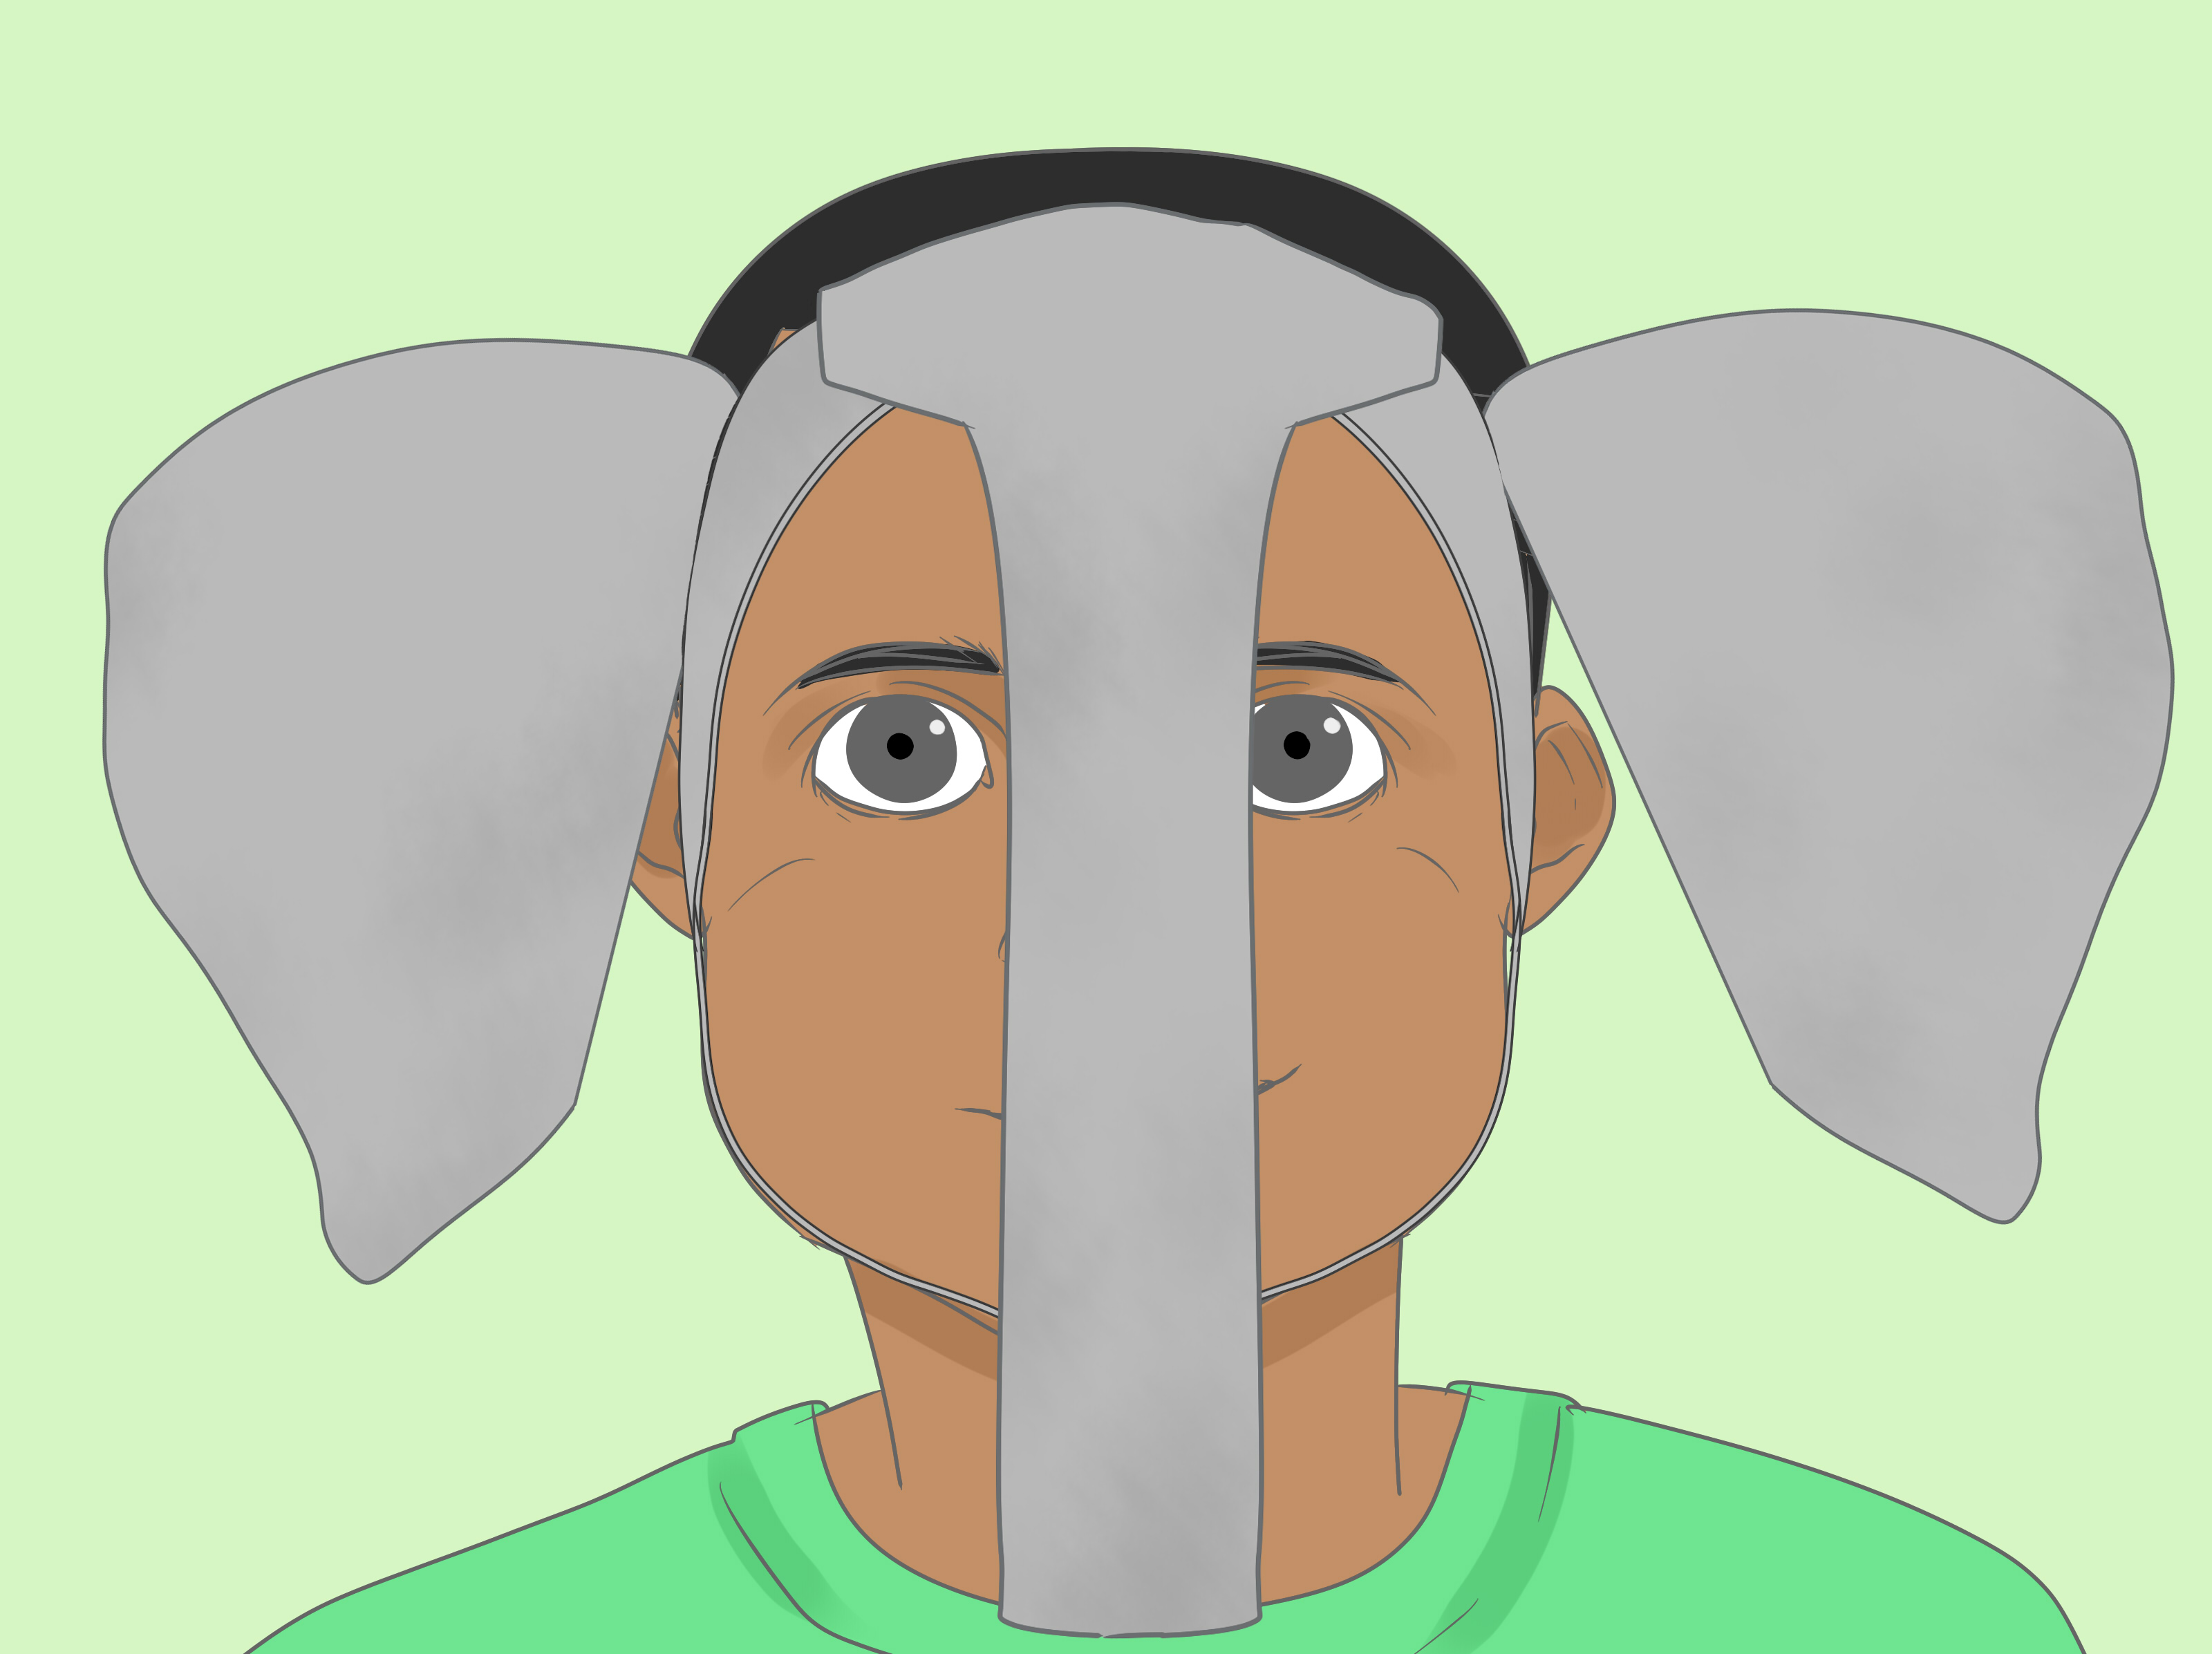 How To Make Elephant Ears For A Costume With Pictures